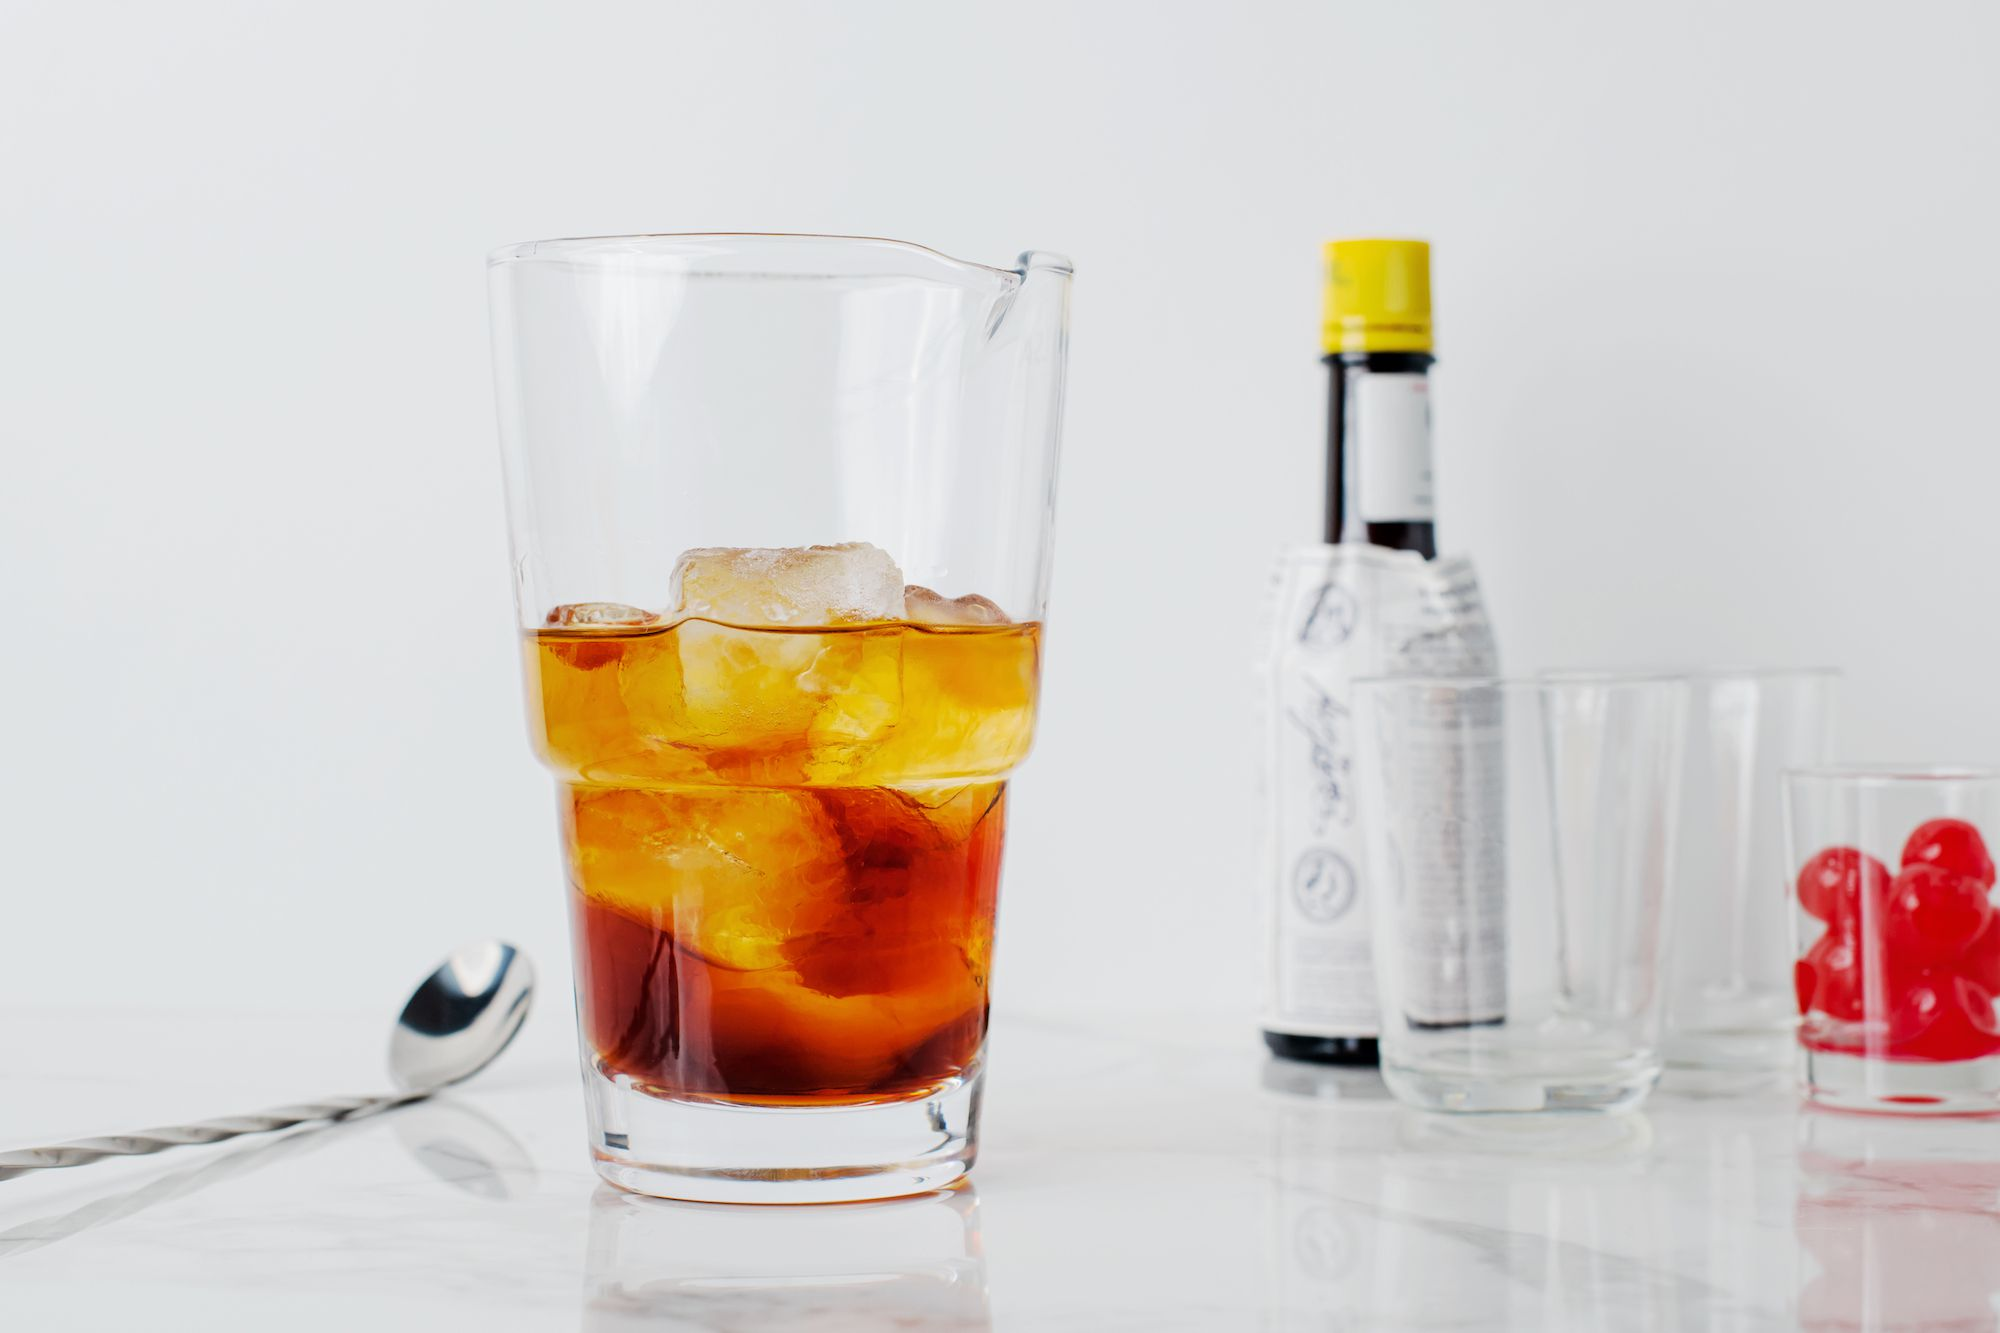 Pour whiskey in glass